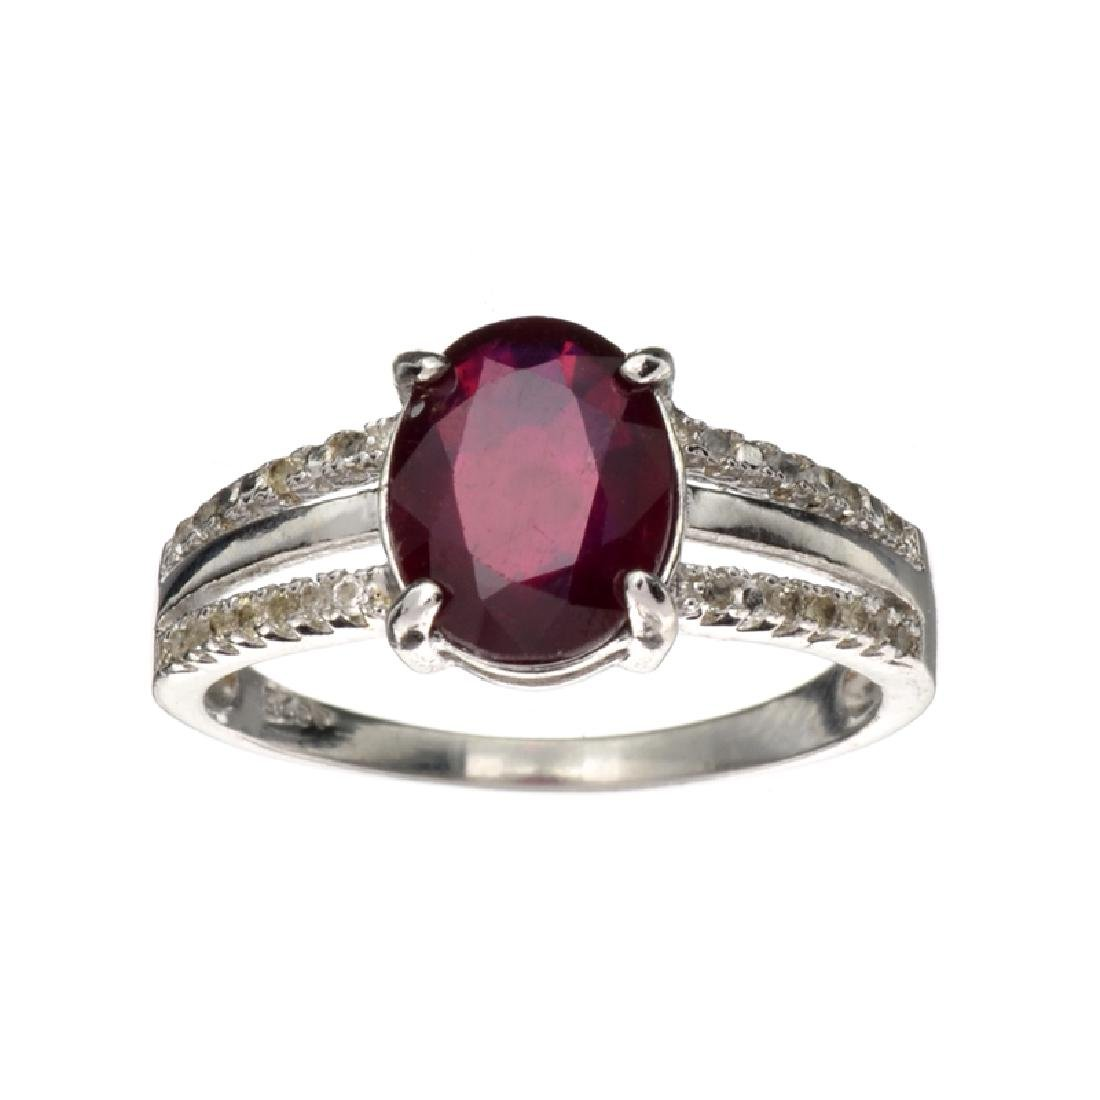 APP: 0.8k Fine Jewelry 2.15CT Ruby And Colorless Topaz